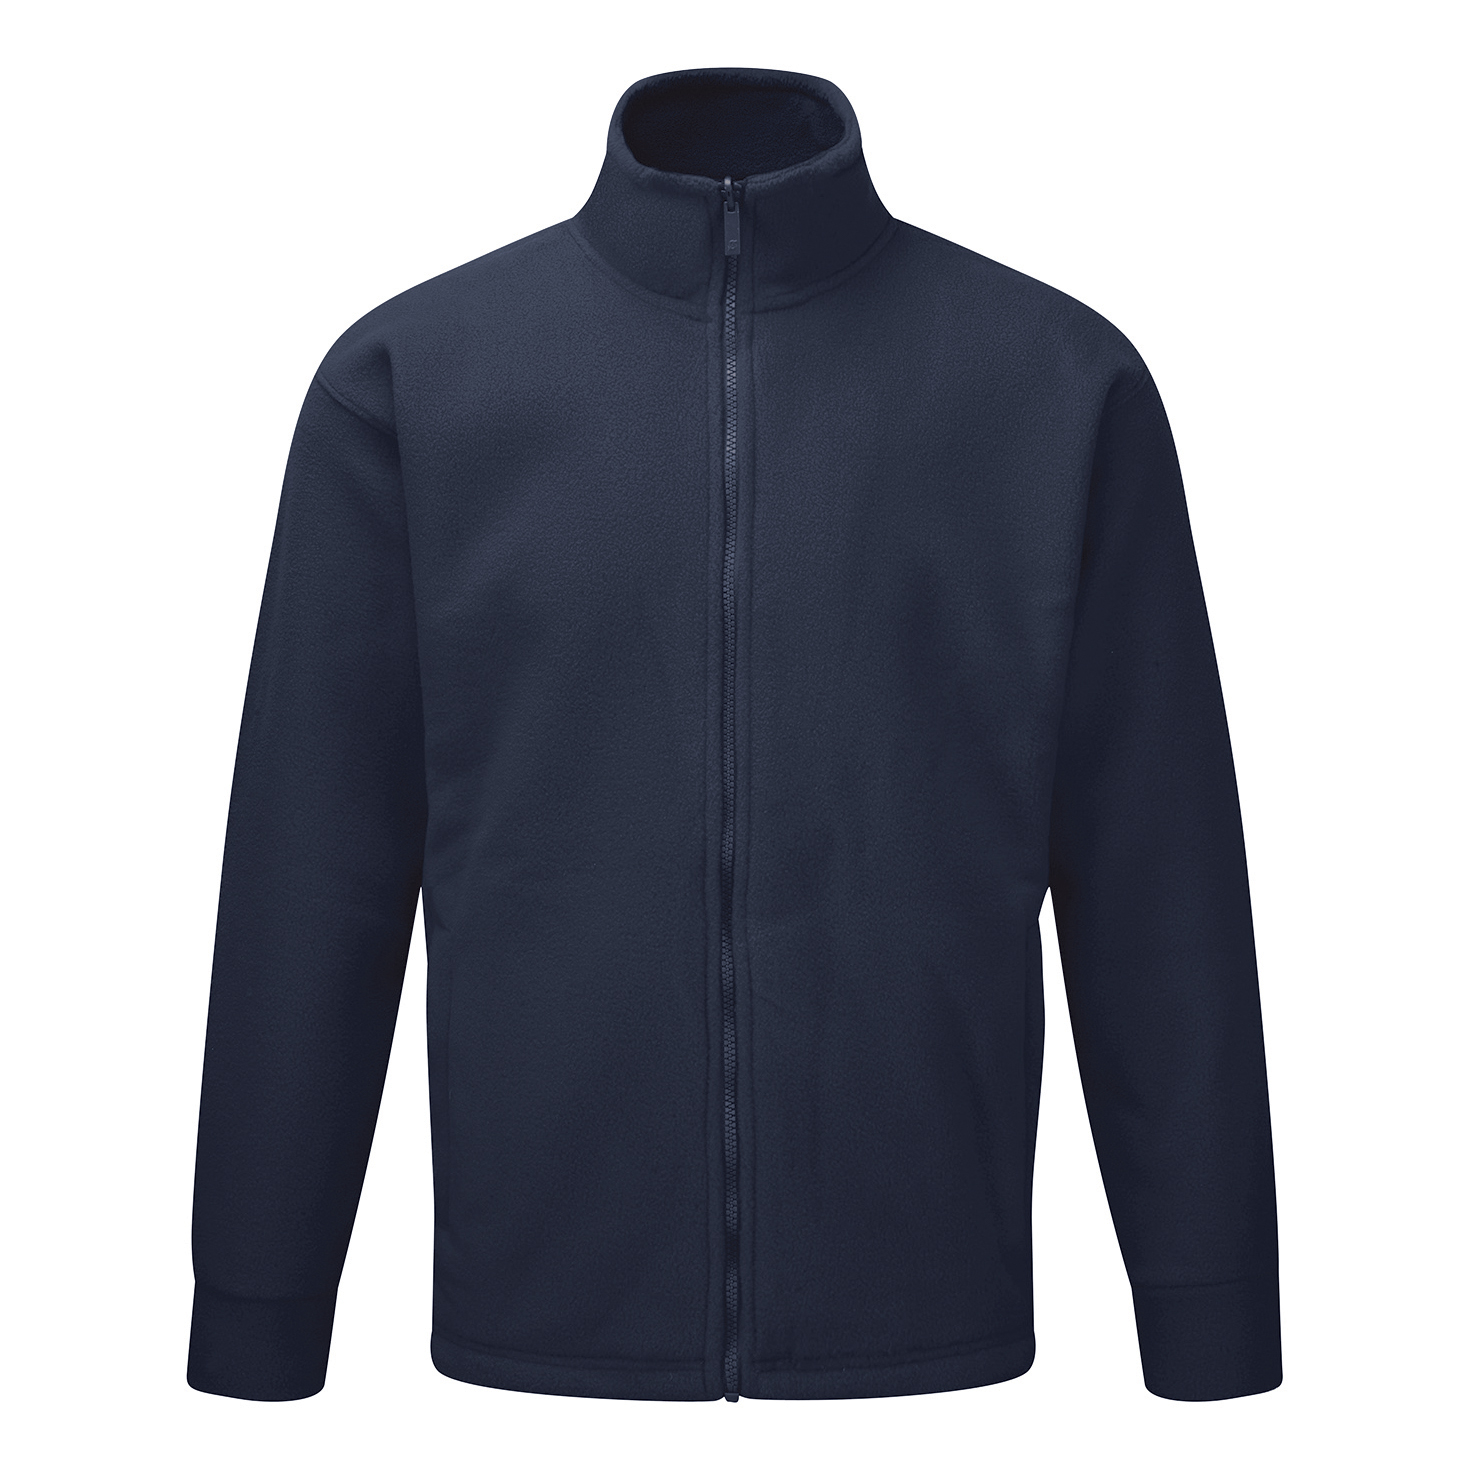 Classic Fleece Jacket Elasticated Cuffs Full Zip Front 2XL Navy Blue Ref FLJNXXL *1-3 Days Lead Time*